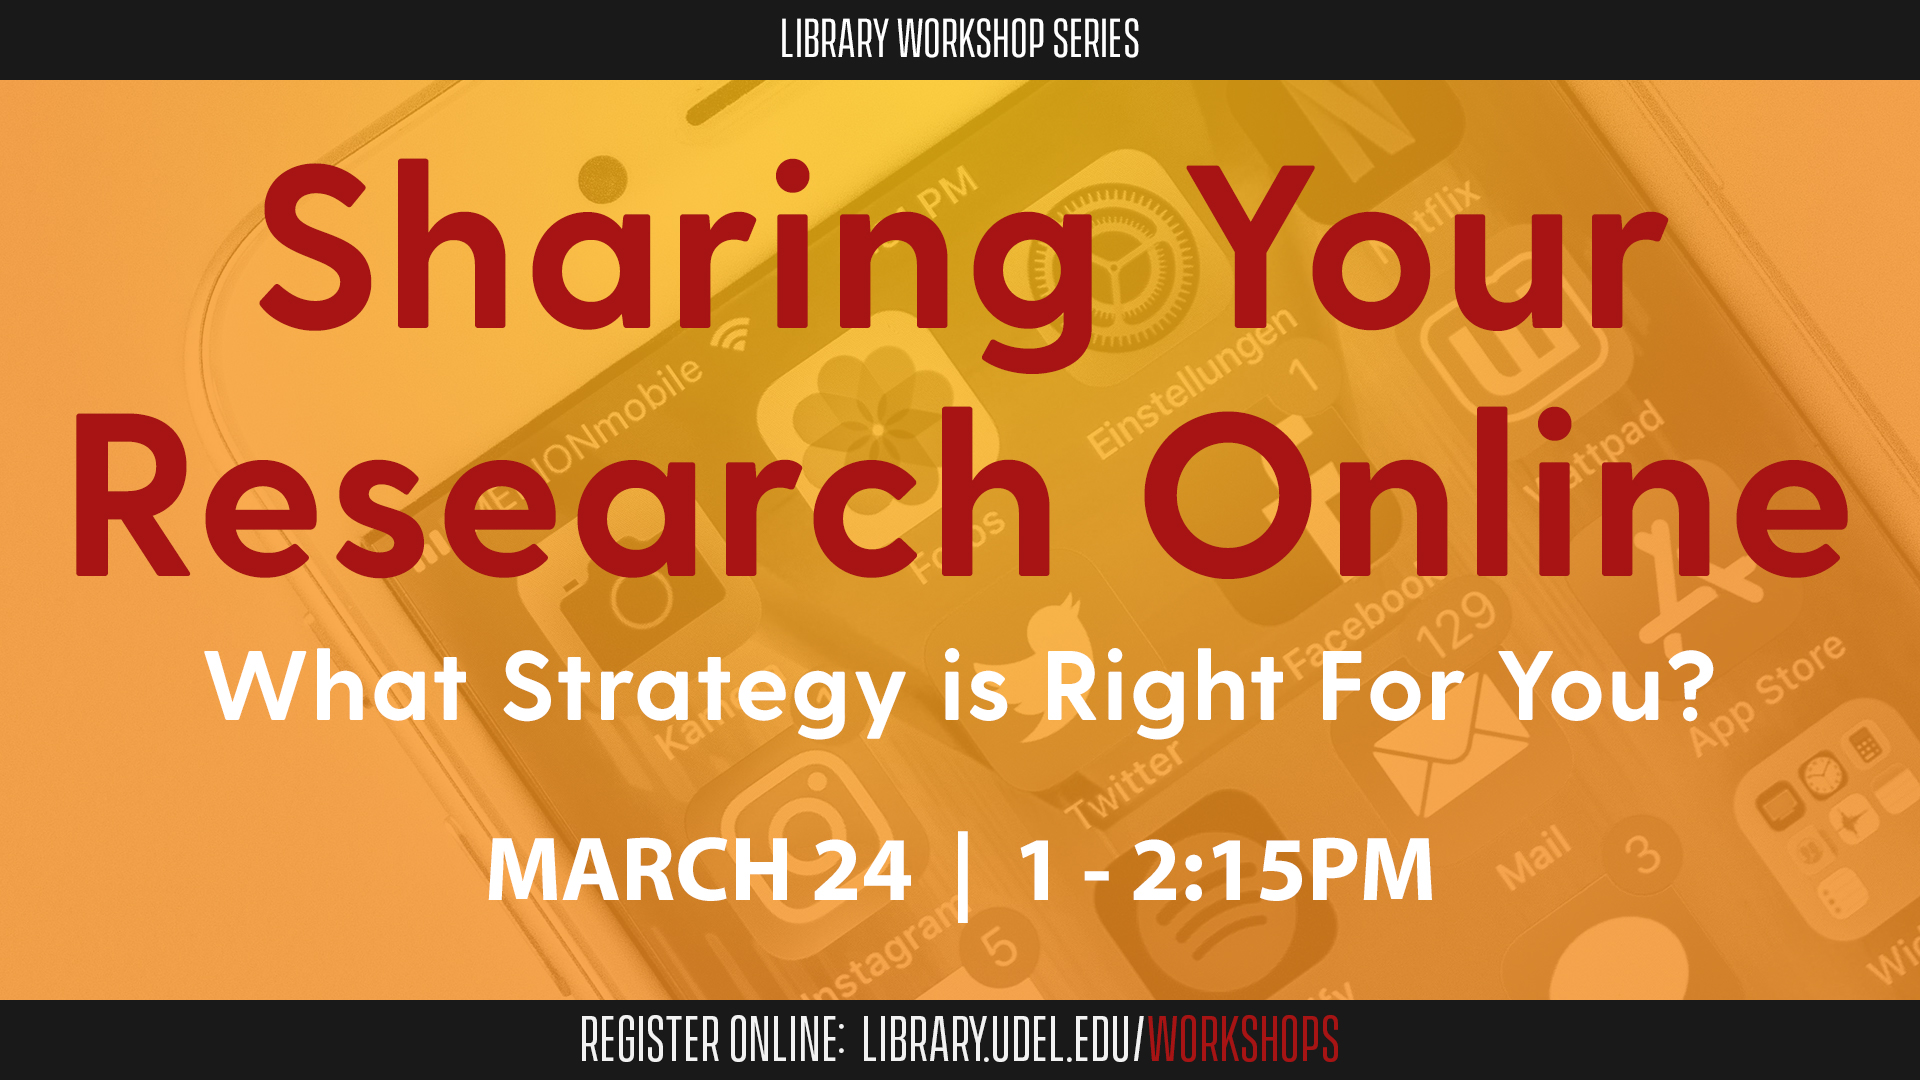 Sharing Your Research Online: What Strategy Is Right For You?